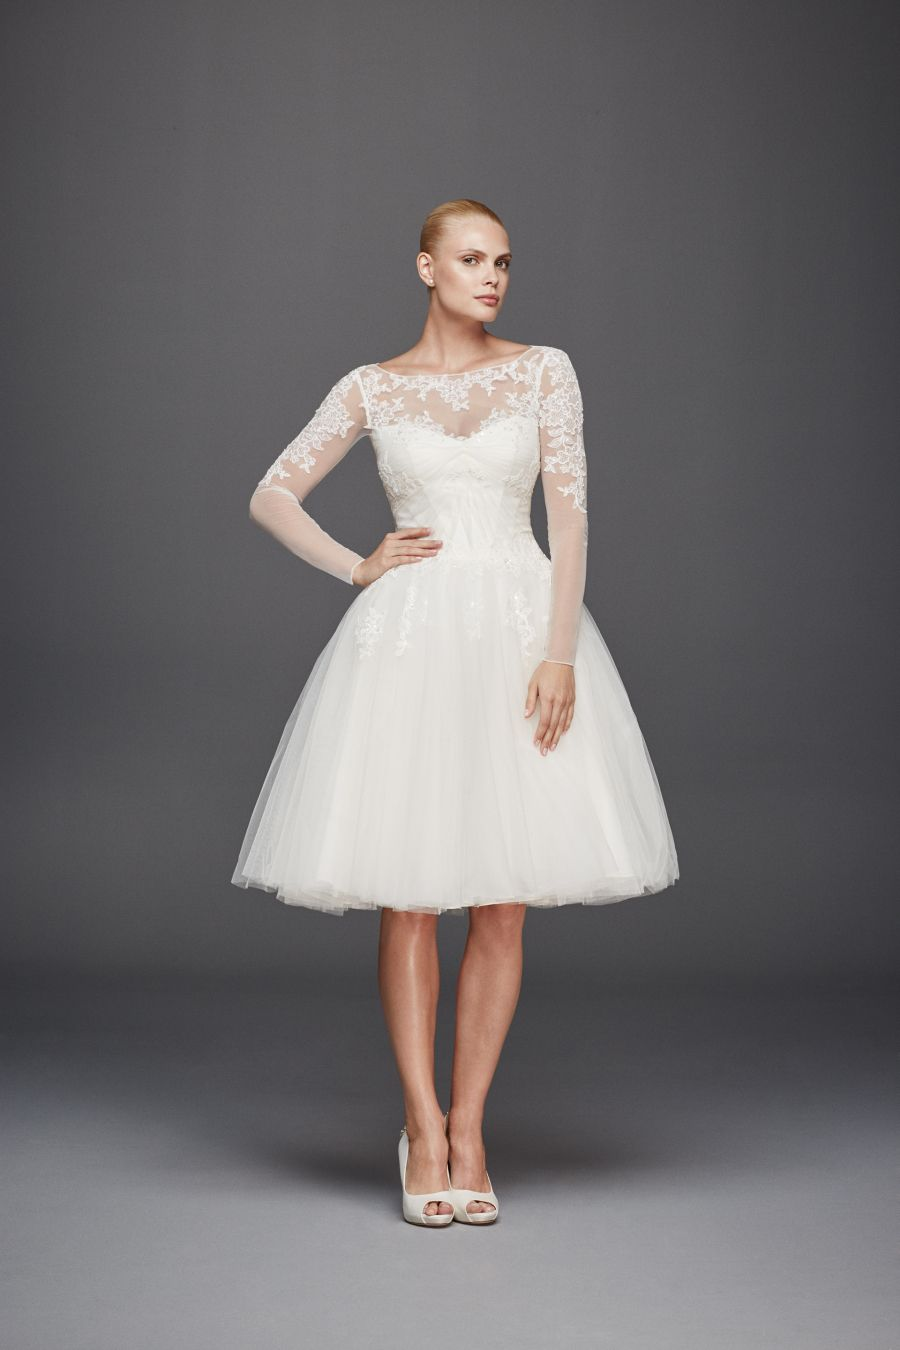 gorgeous wedding dresses you wonut believe cost less than